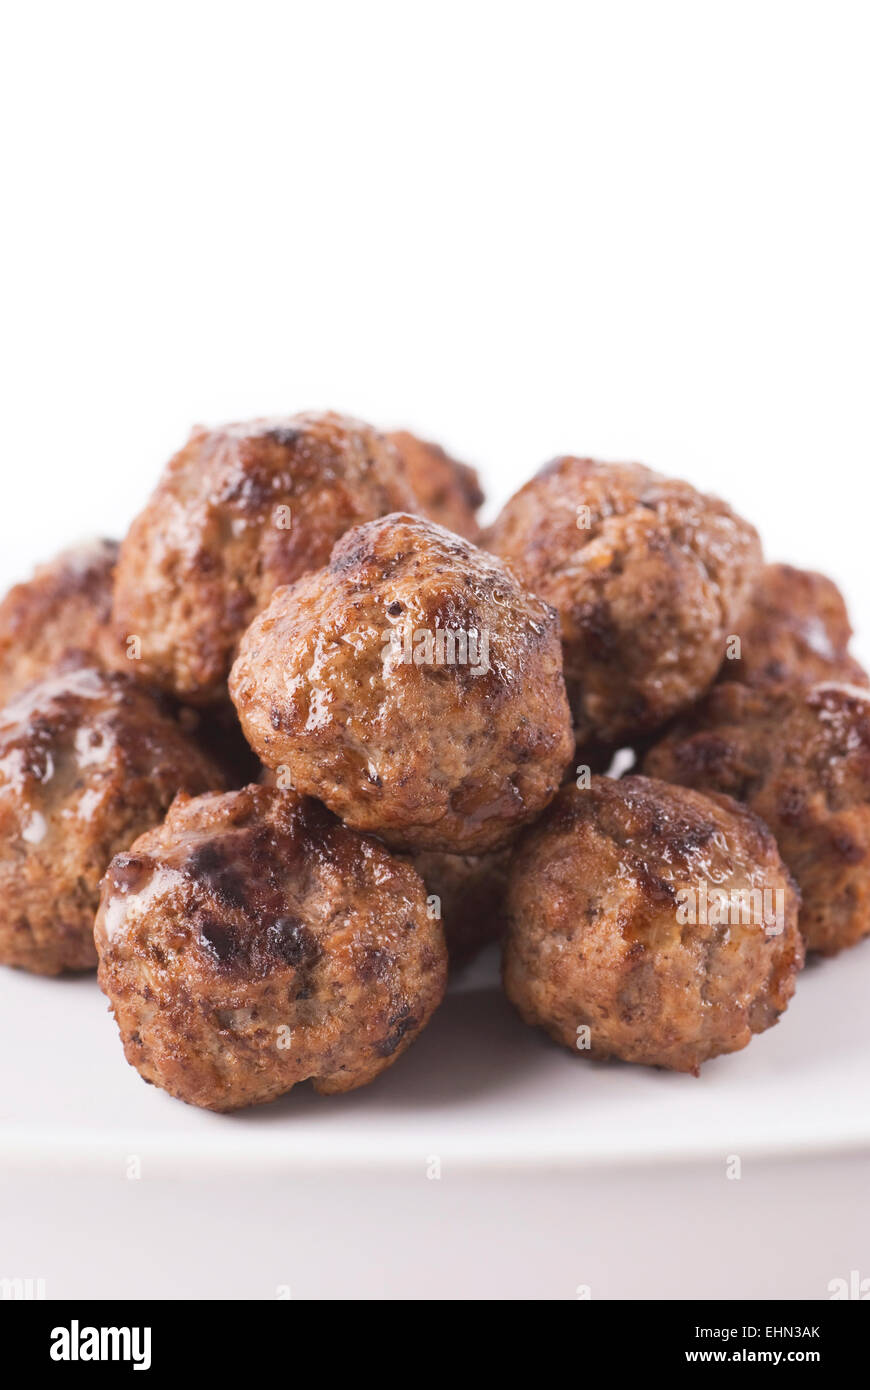 Meat balls on a plate. White background close up. - Stock Image